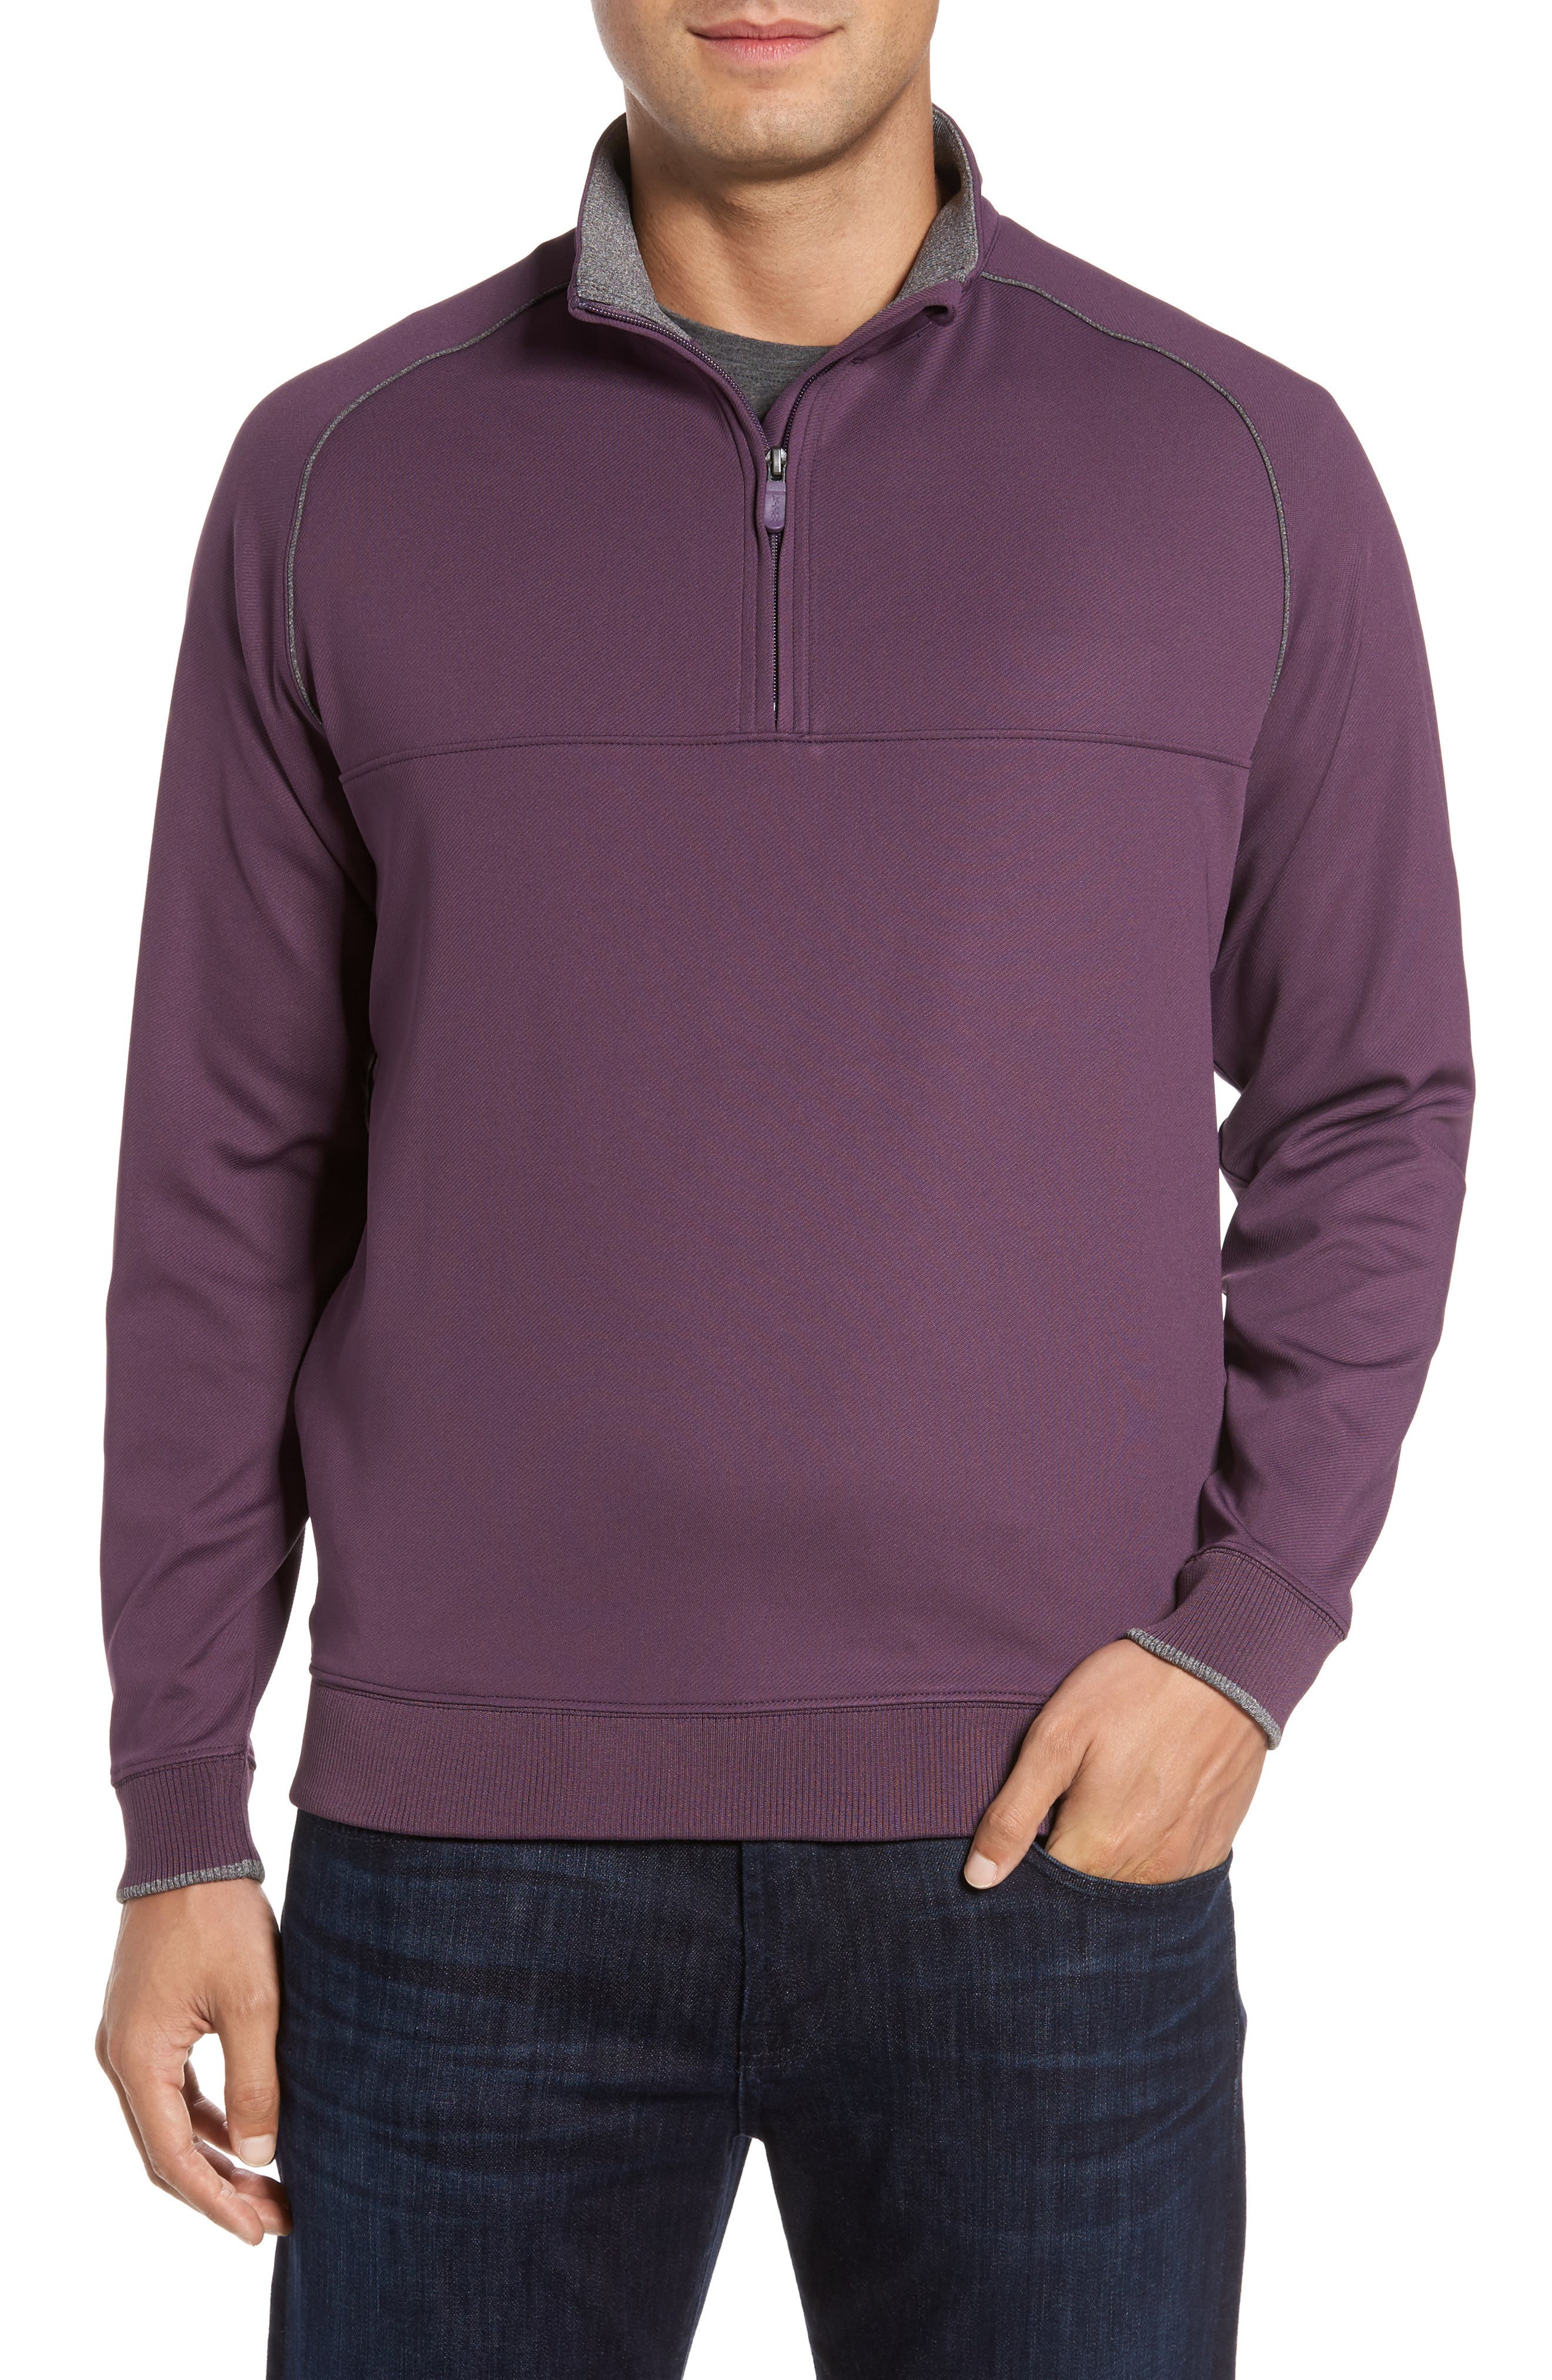 XH20 Banded Bottom Pullover,                         Main,                         color, Blackberry